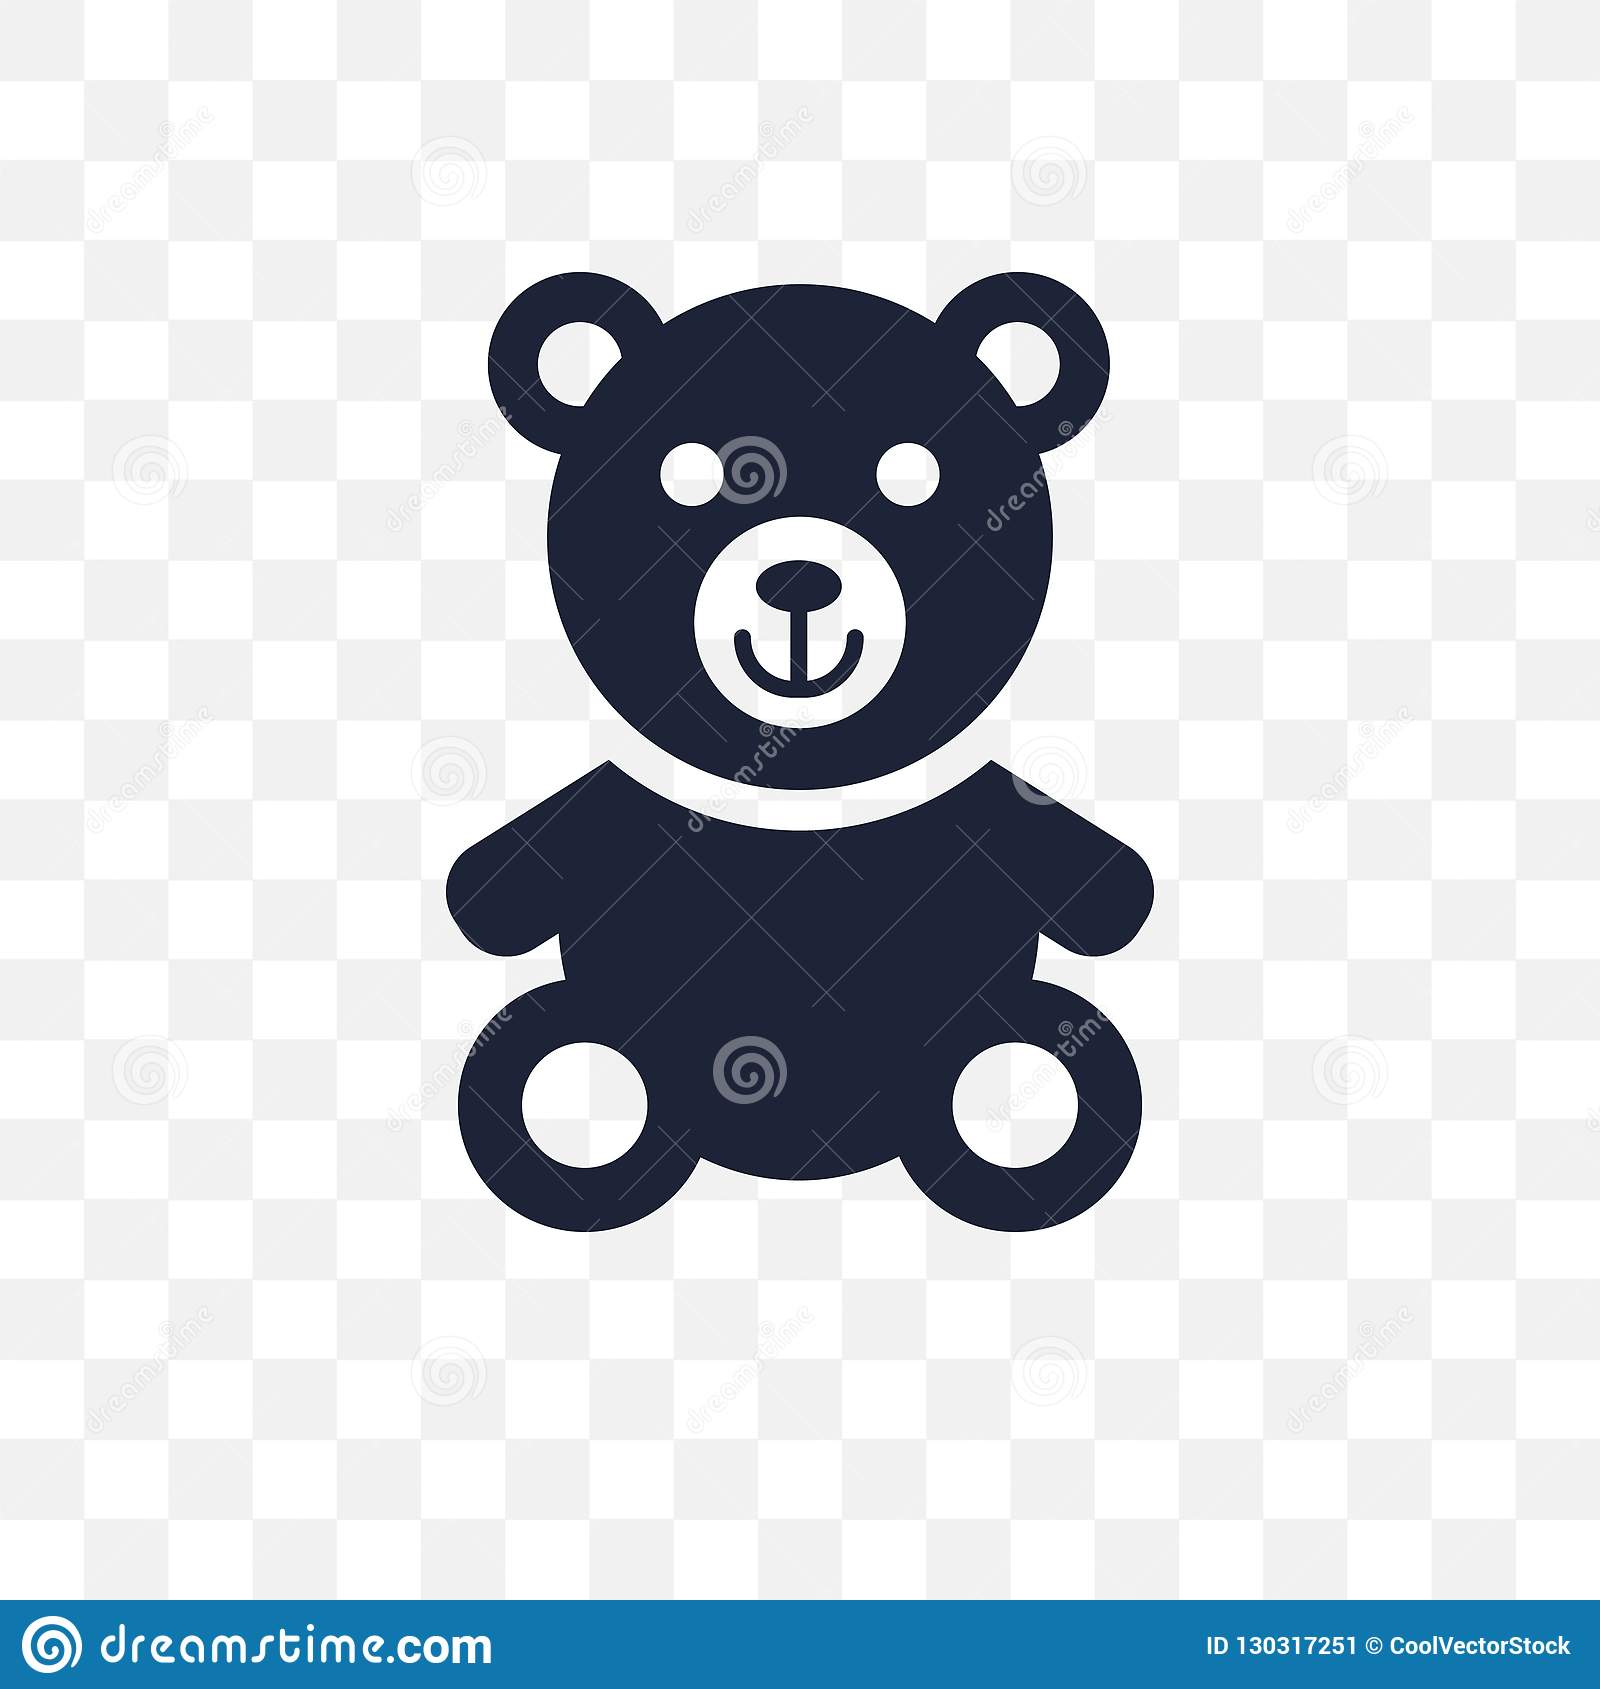 teddy bear transparent icon teddy bear symbol design from birth stock vector illustration of cuddle cheerful 130317251 https www dreamstime com teddy bear transparent icon symbol design birth birthday party collection simple element vector illustration image130317251